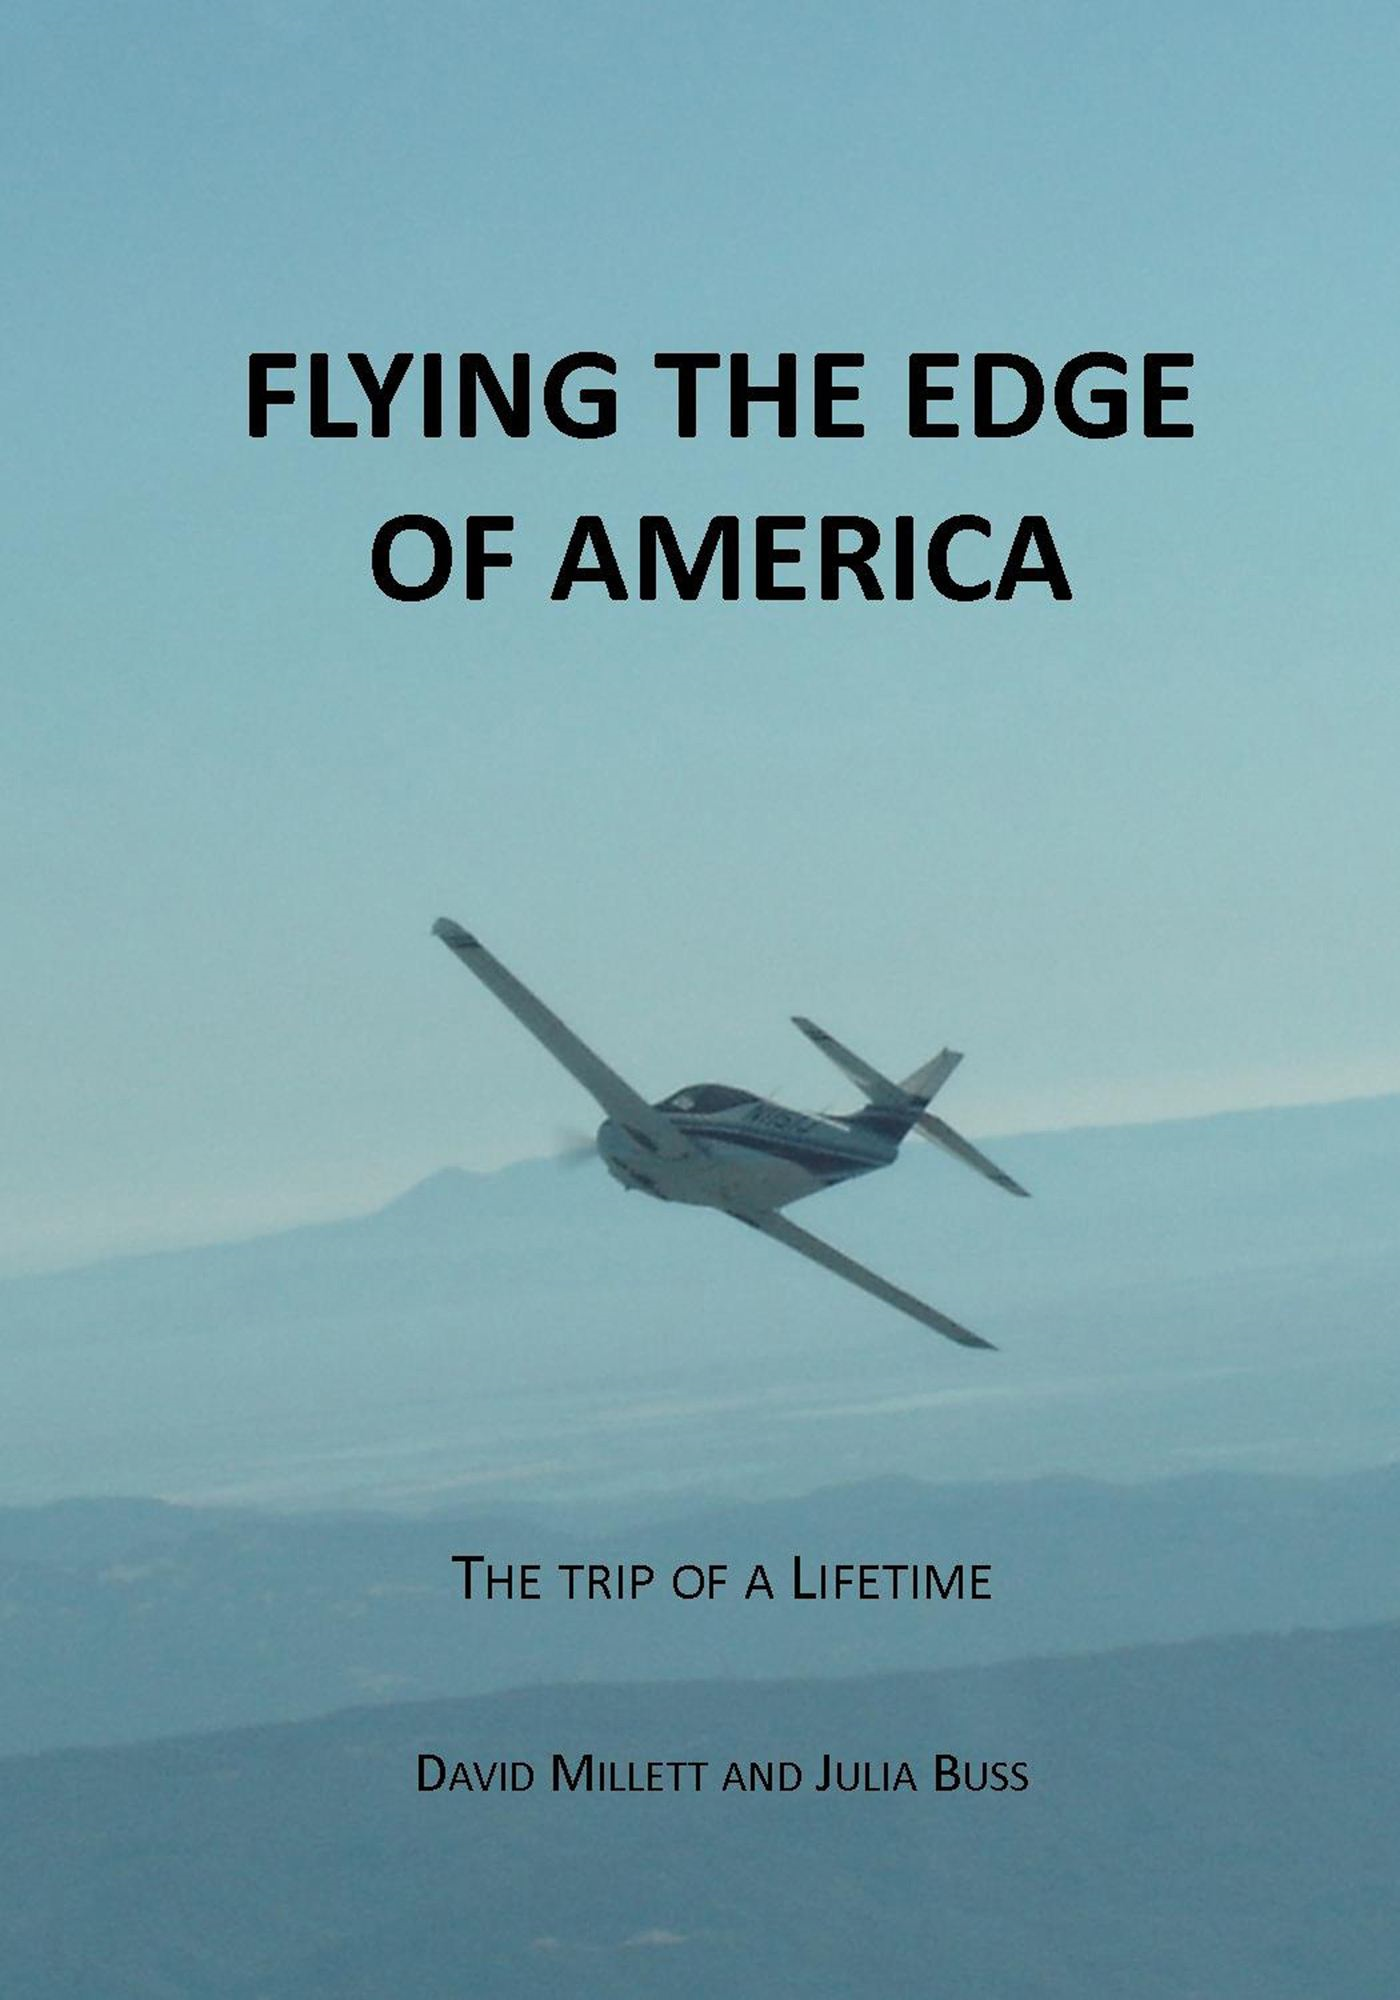 Flying the Edge of America, a trip of a lifetime